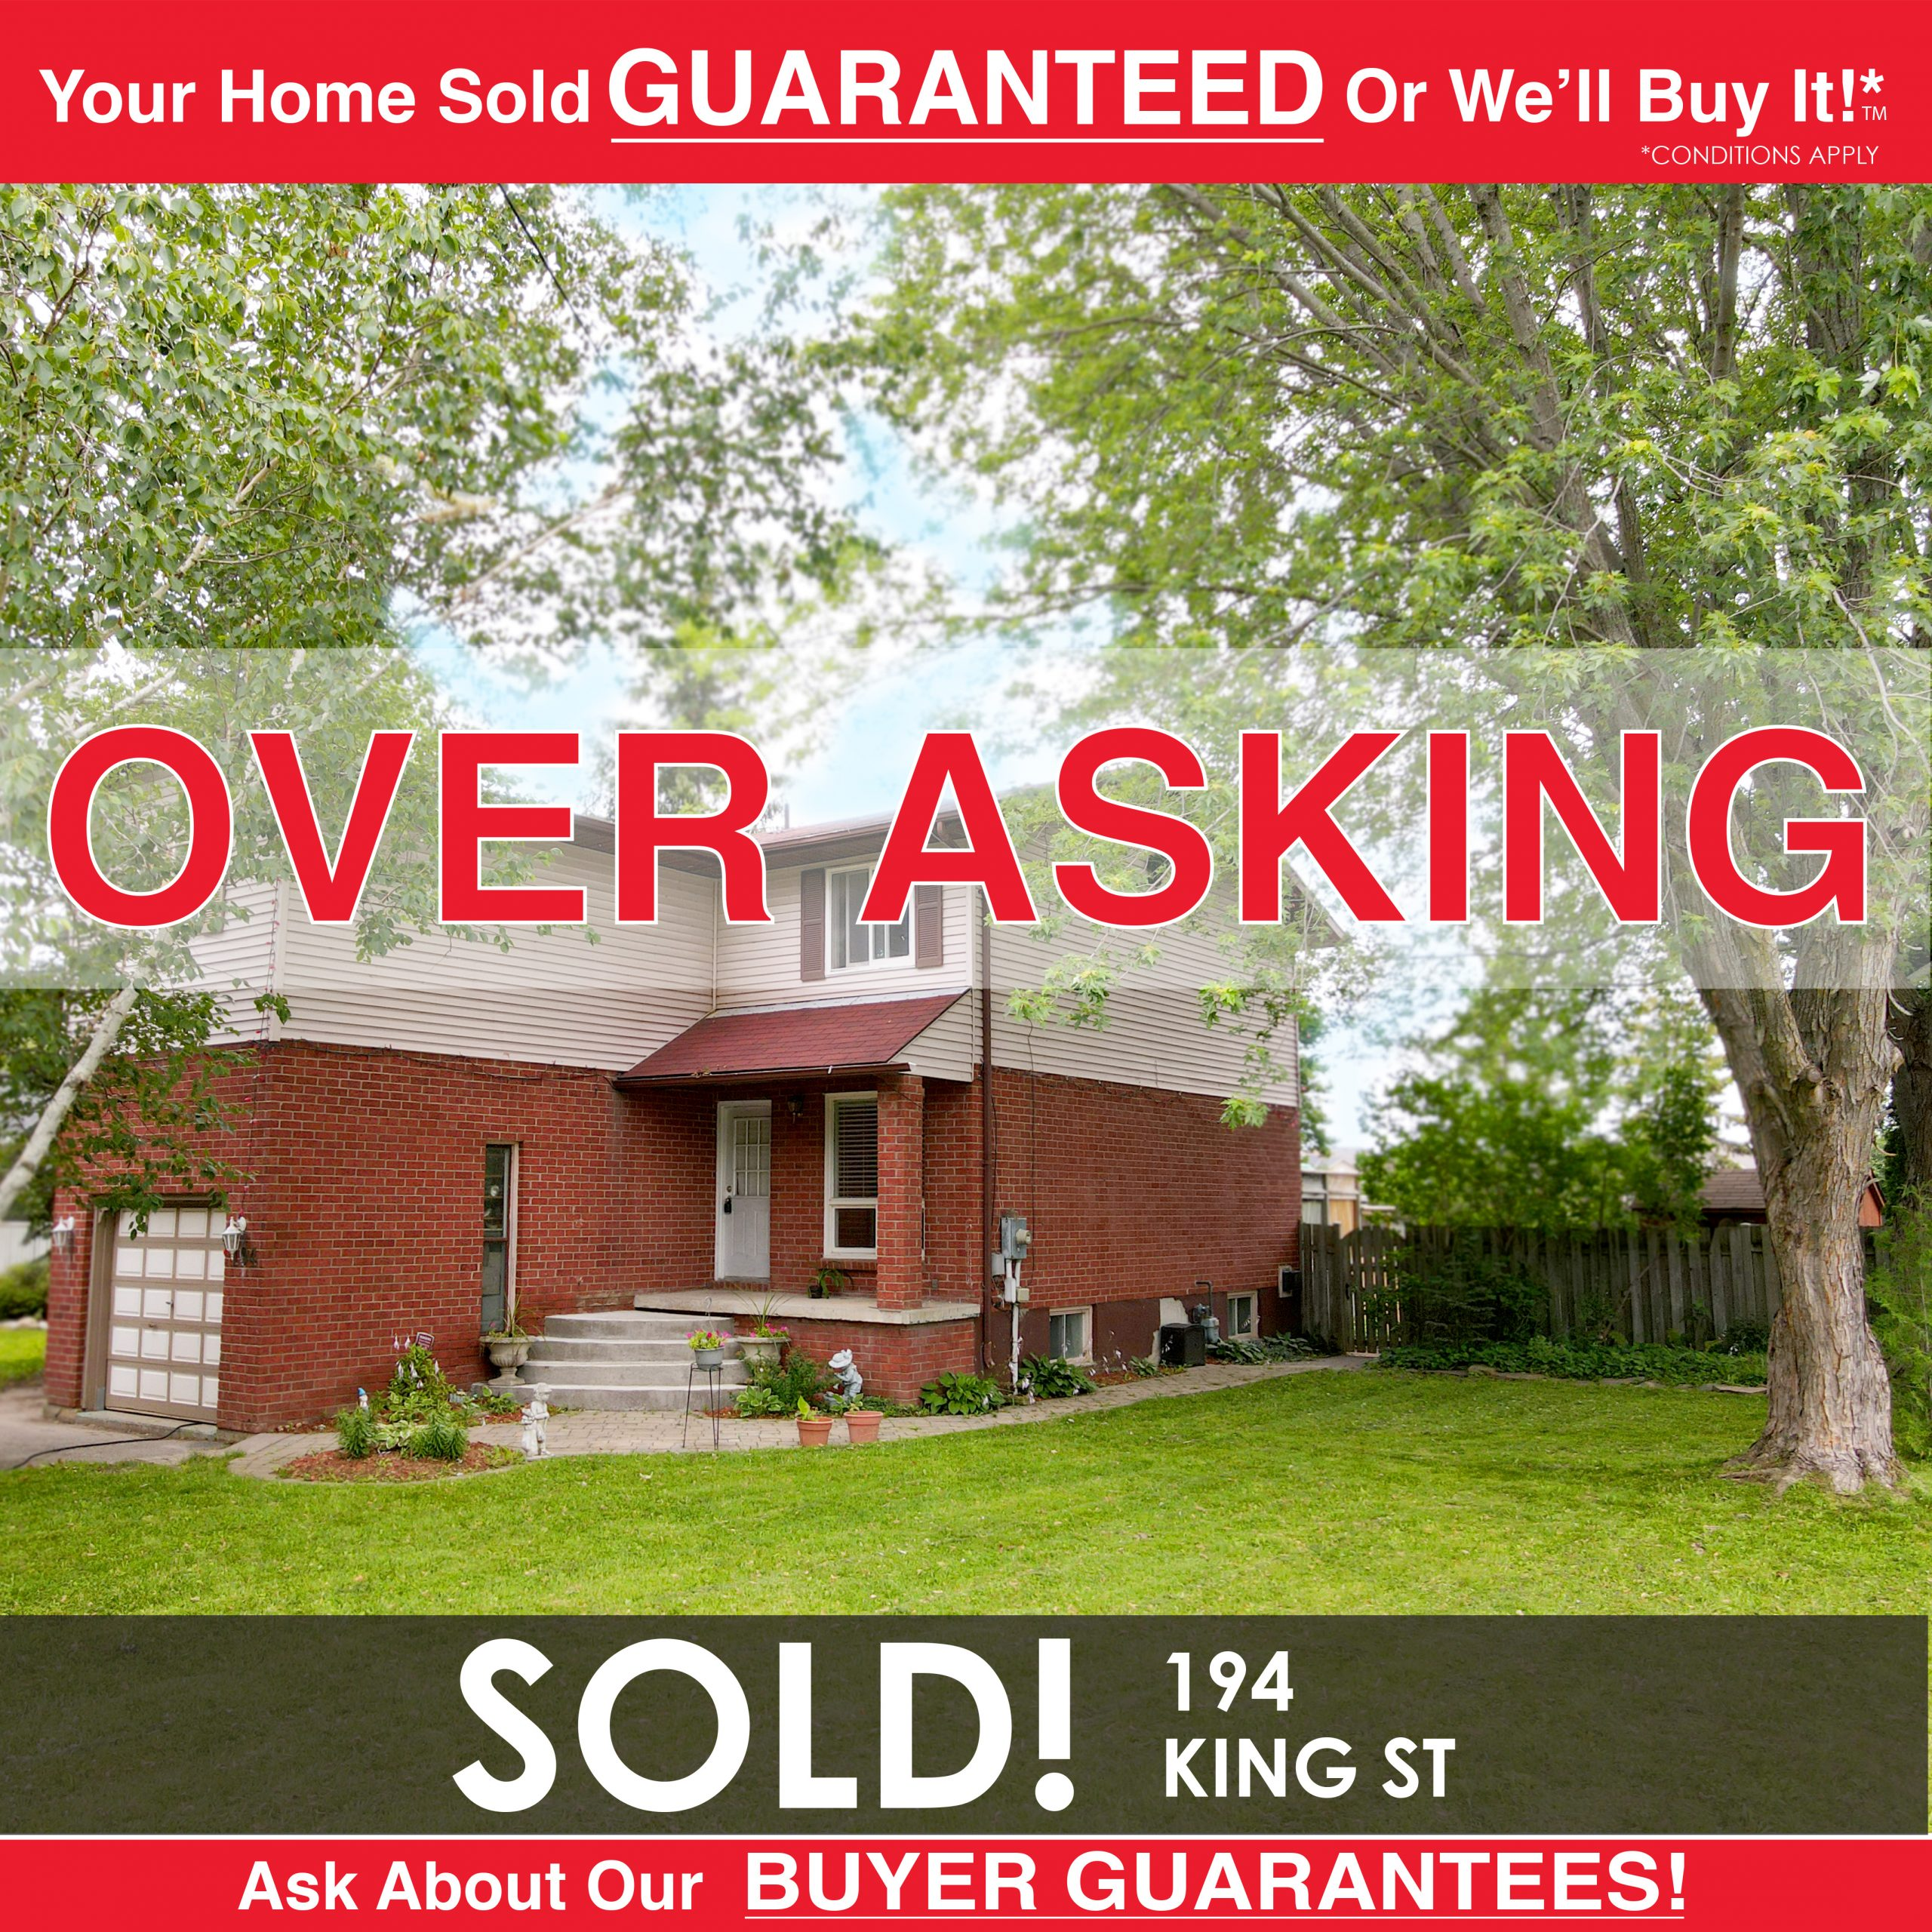 Sold 194 King St